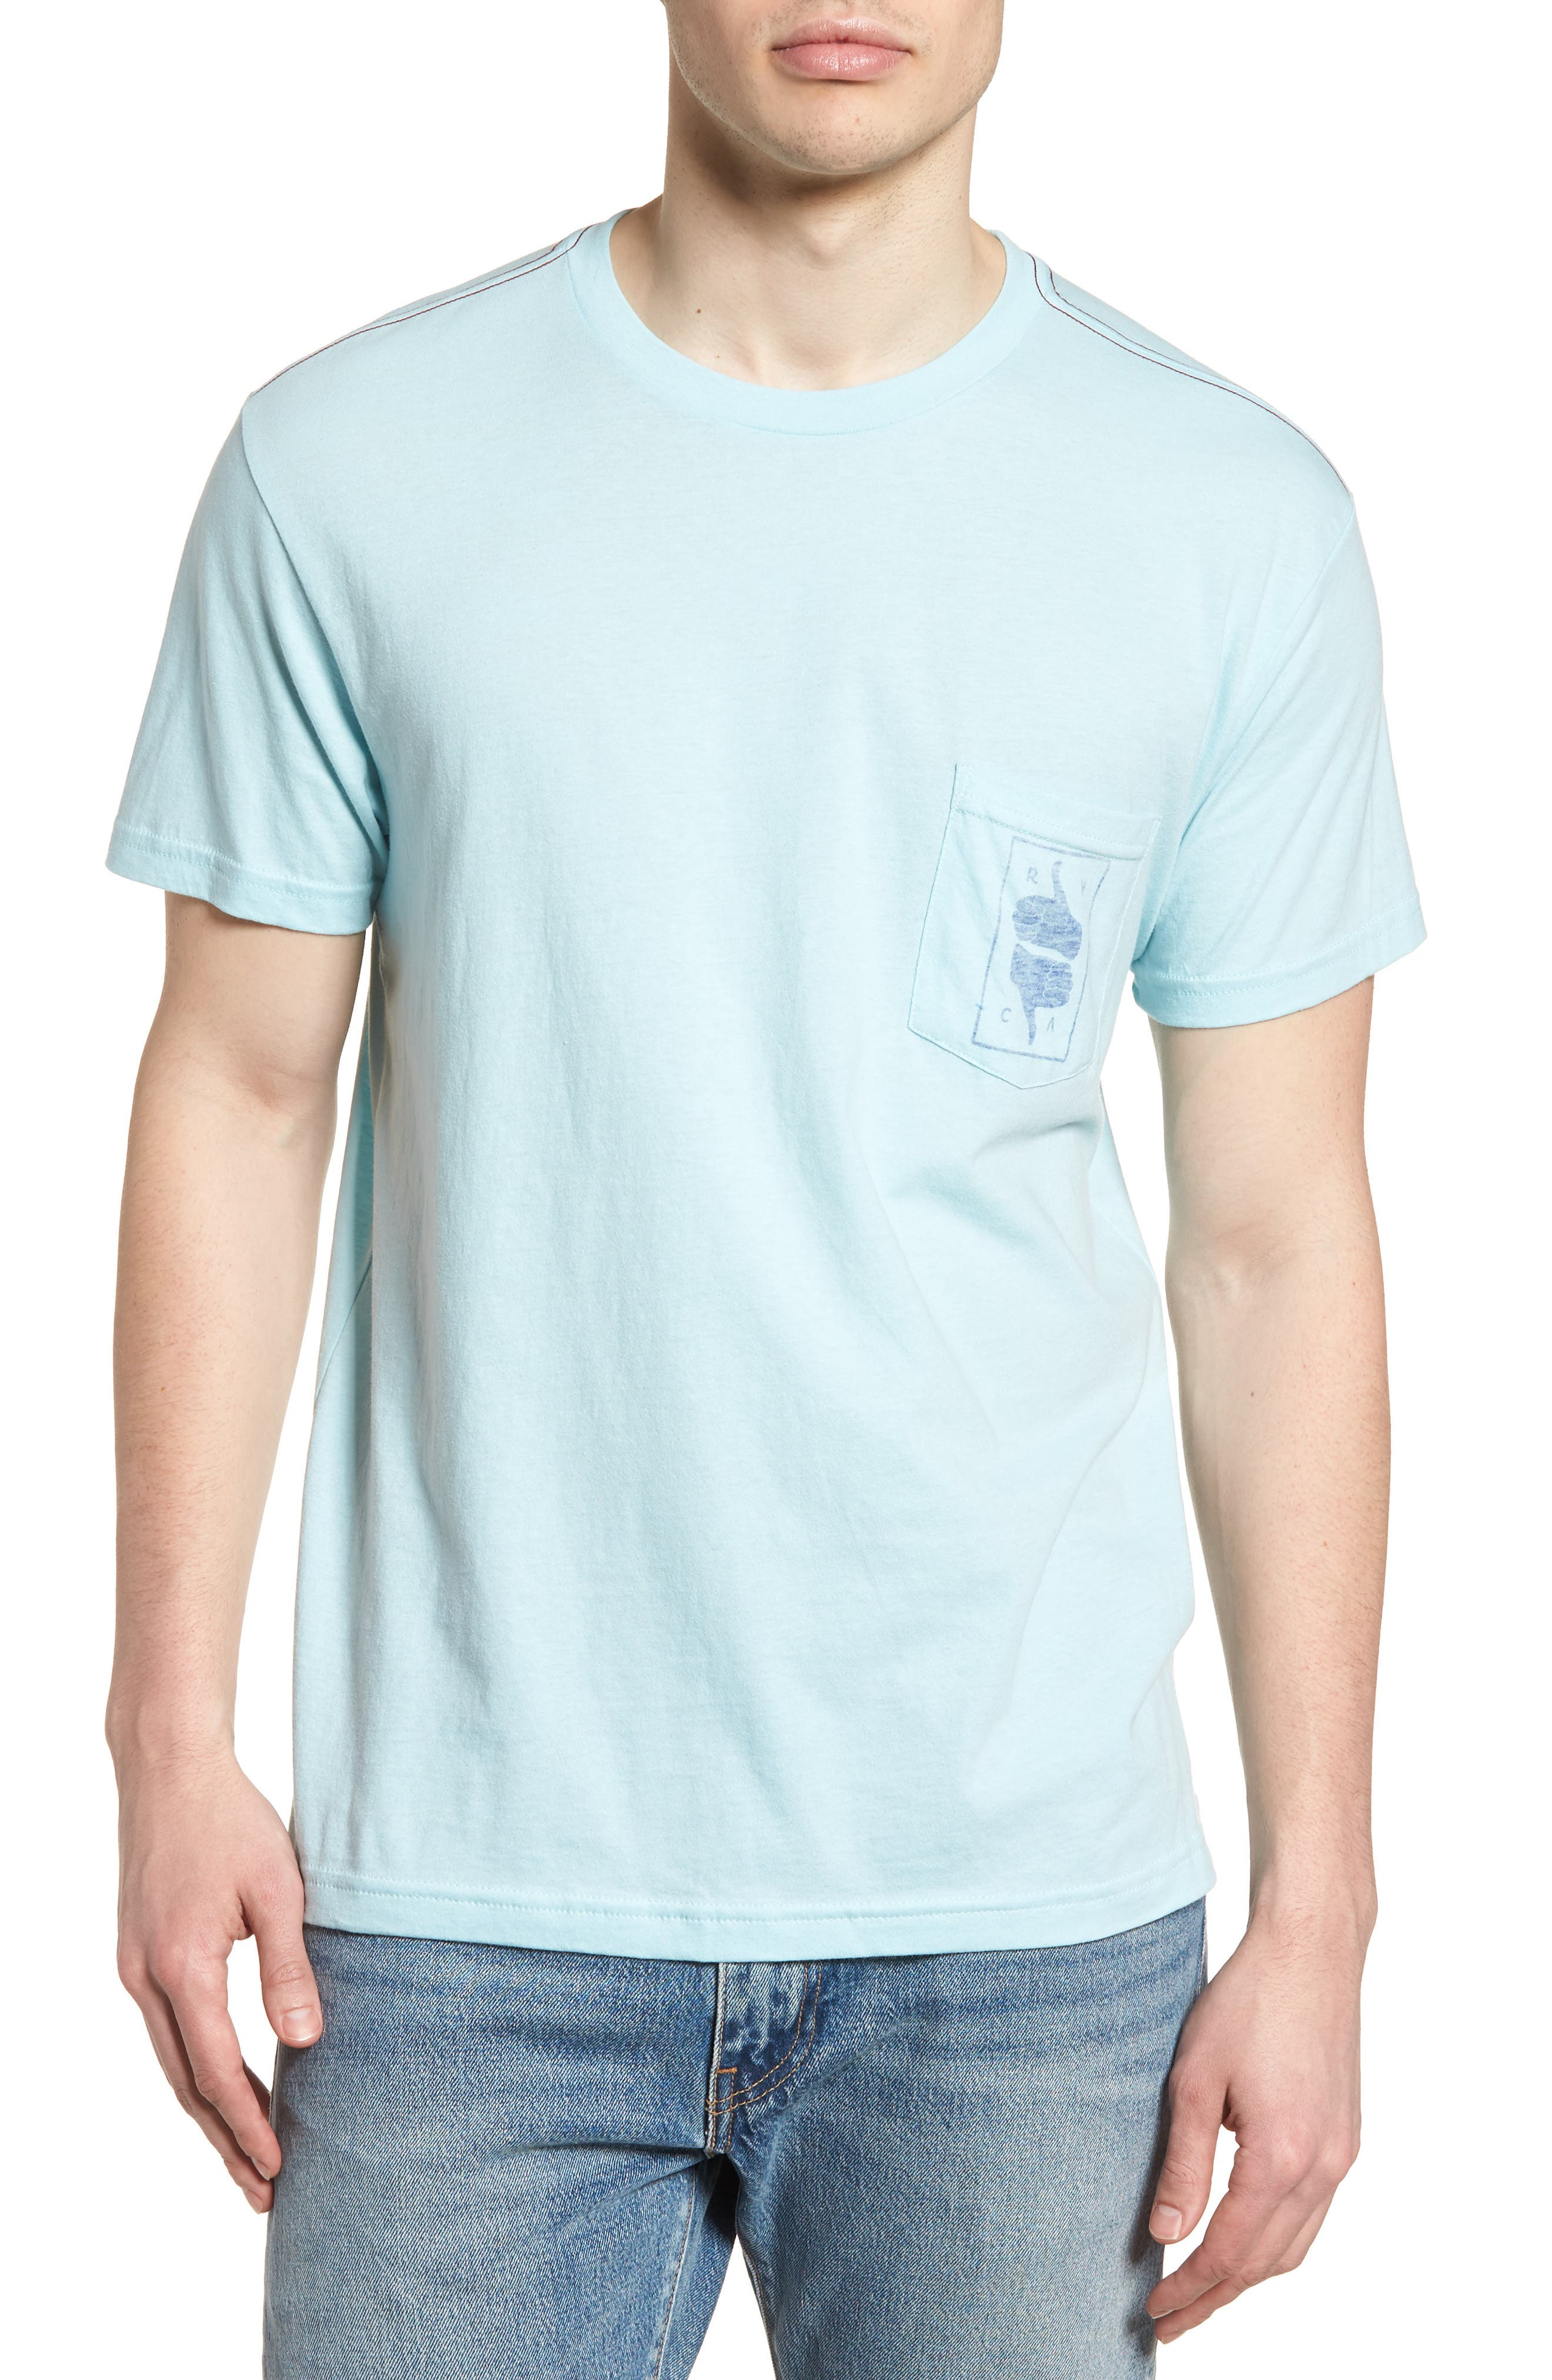 Thumbs Up T-Shirt,                         Main,                         color, Blue